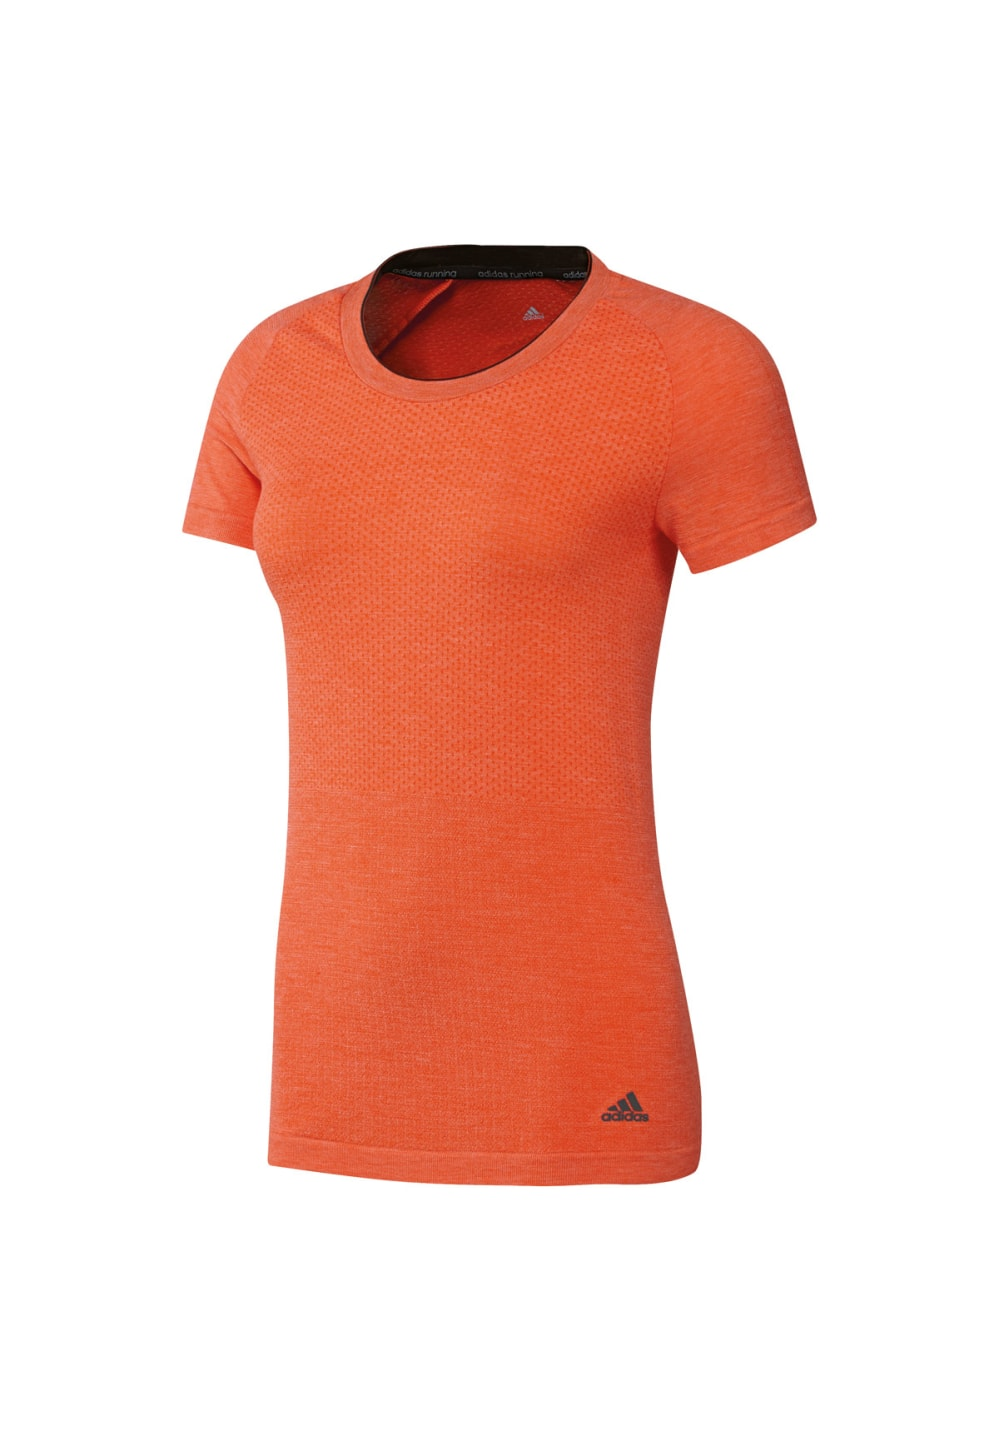 adidas adiStar Wool Primeknit Short Sleeve - Laufshirts für Damen - Orange, Gr.